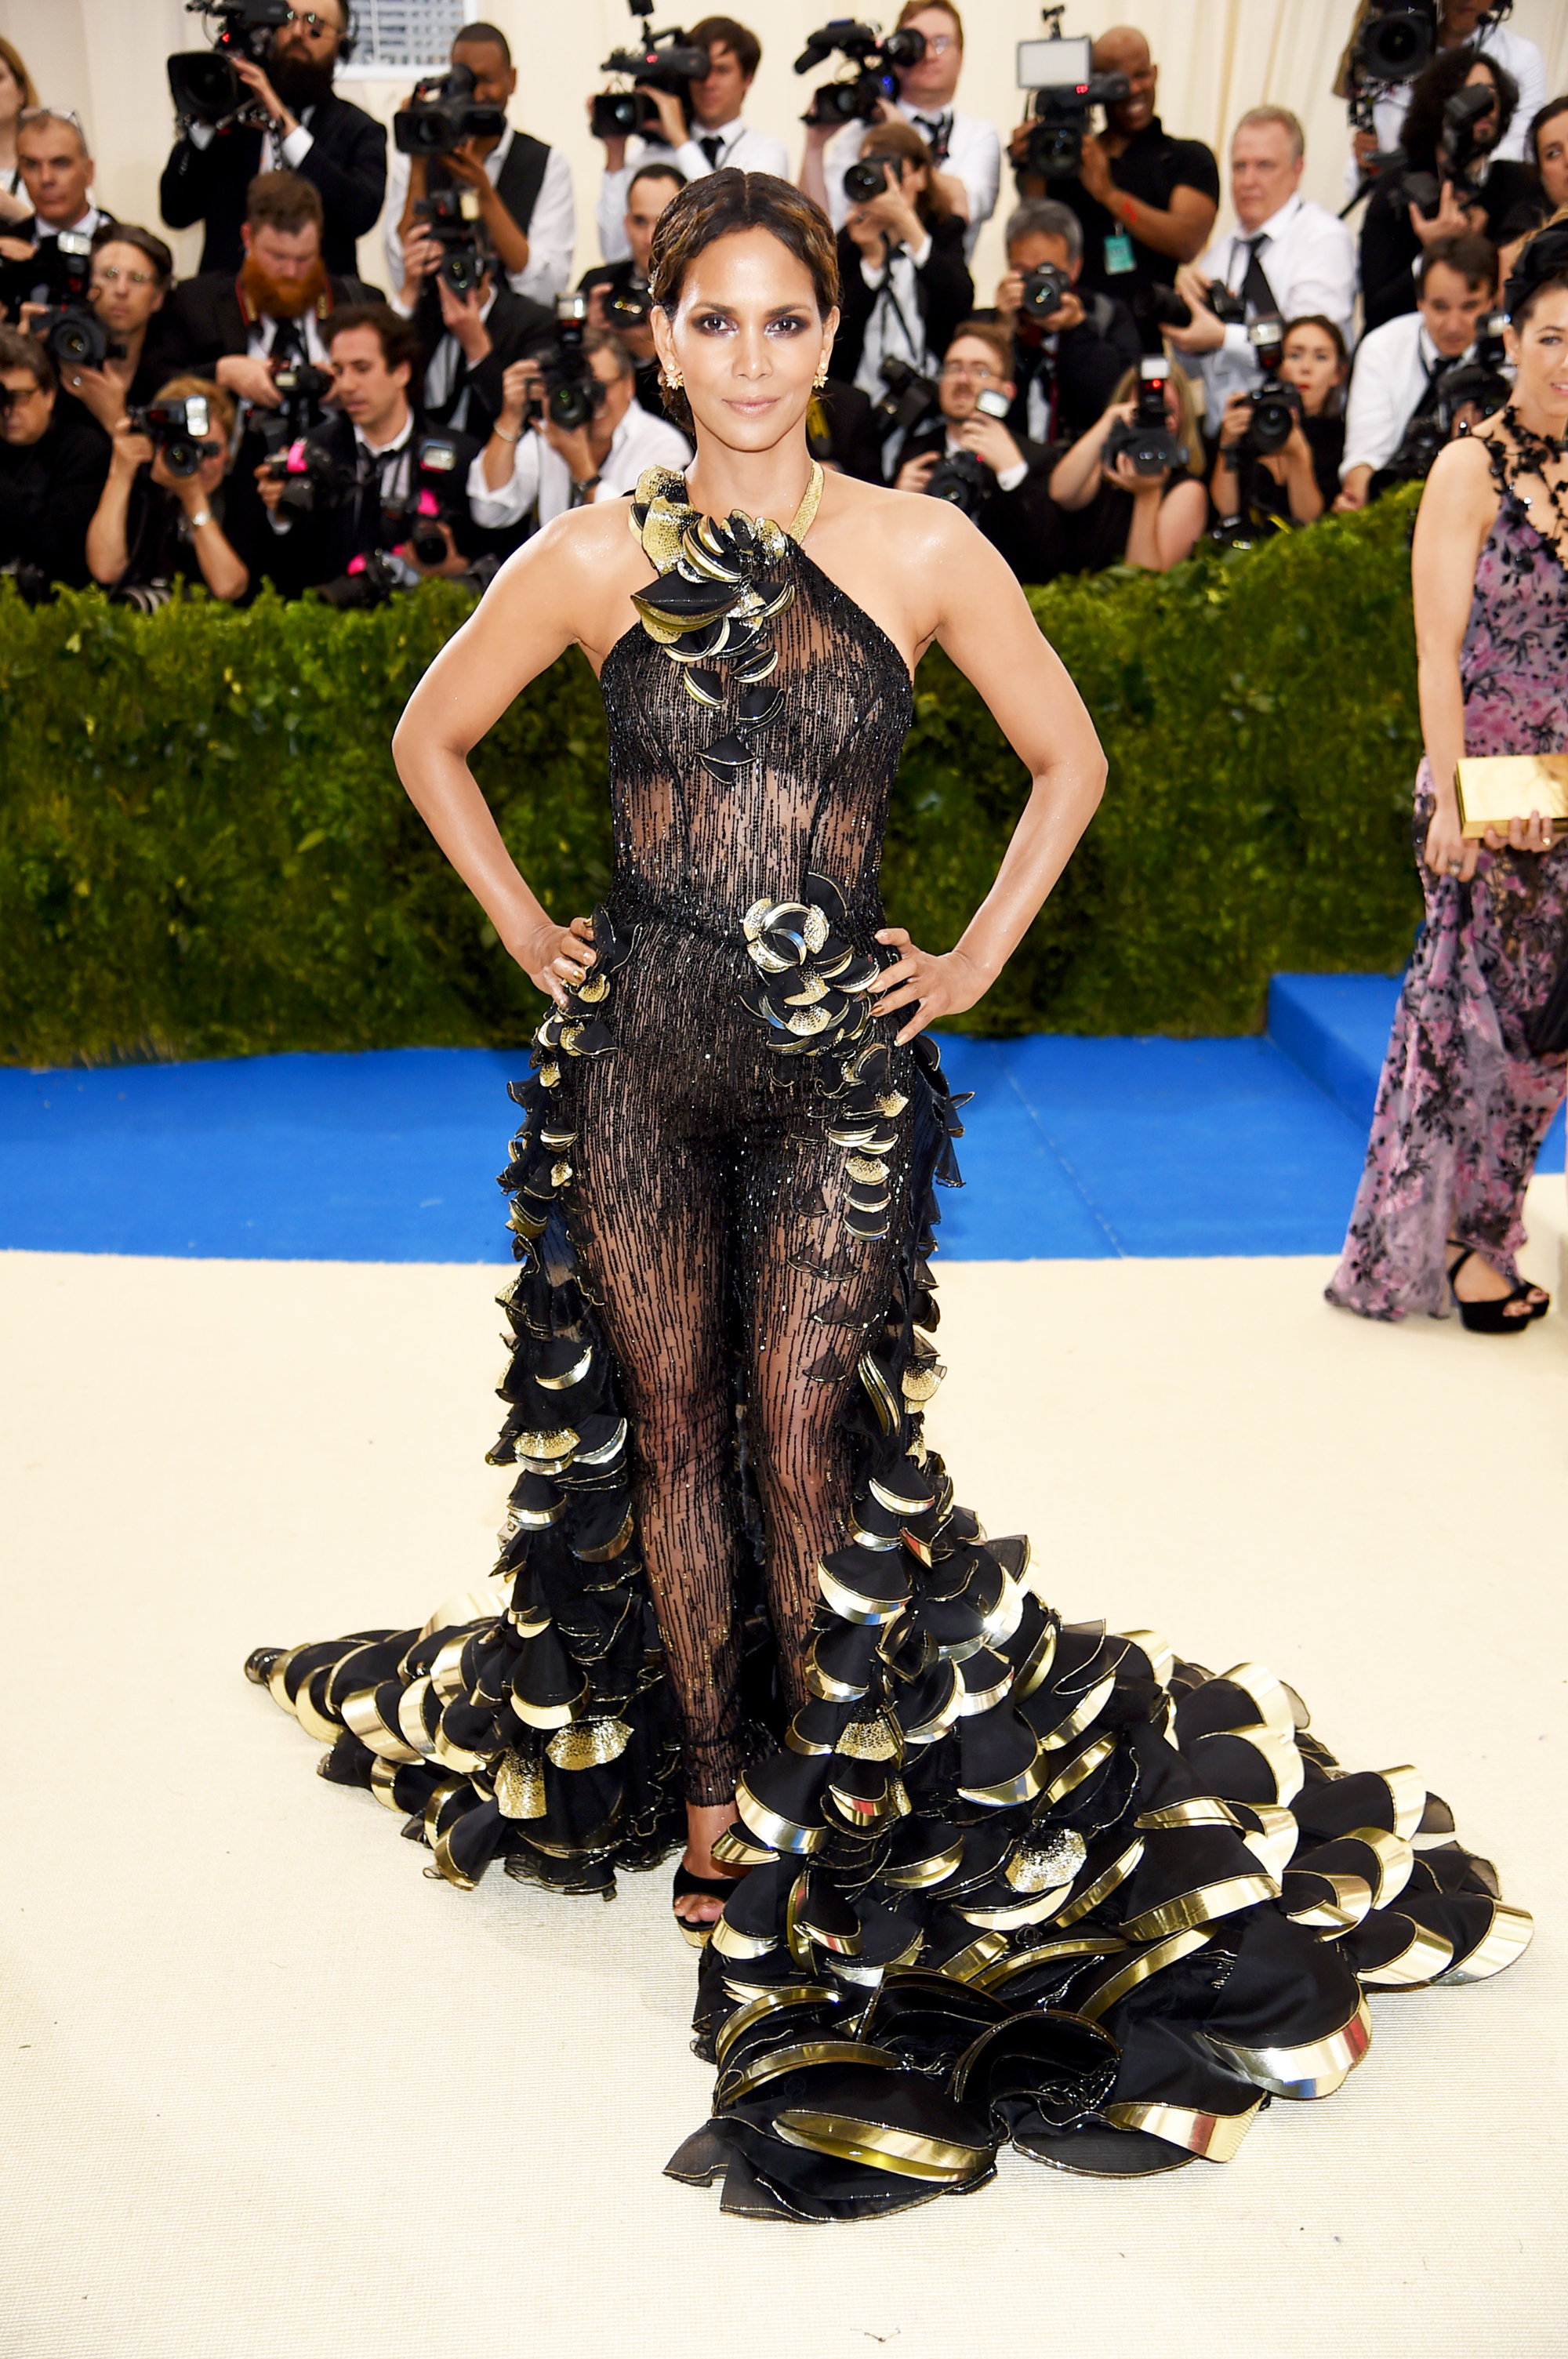 Halle Berry attends The Metropolitan Museum of Art's Costume Institute benefit gala celebrating the opening of the Rei Kawakubo/Comme des Garçons: Art of the In-Between exhibition in New York City, on May 1, 2017.